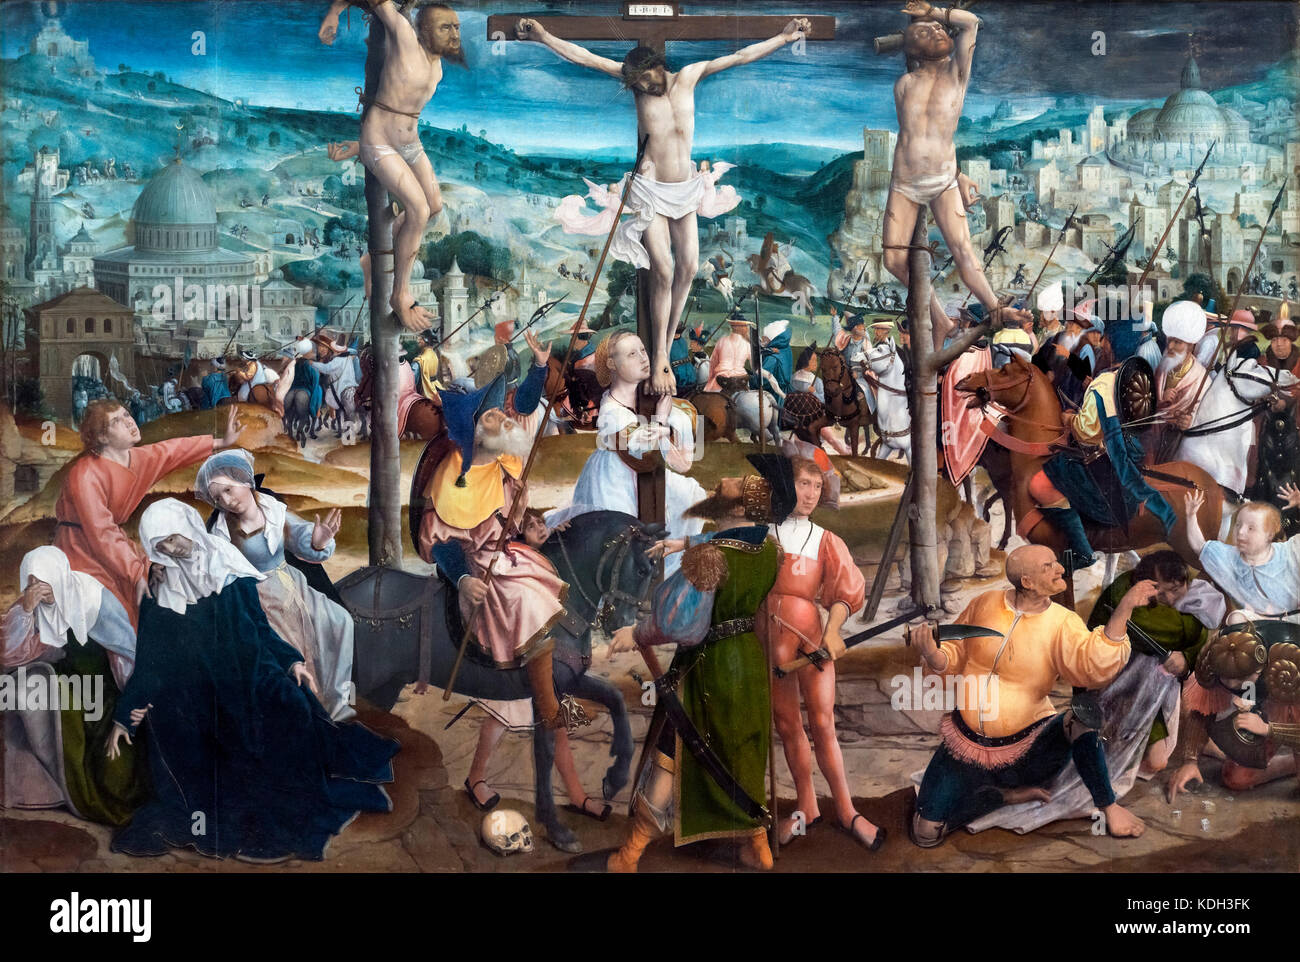 Crucifixion by Jan Provoost (1462-1529), oil on panel, c.1501-1505 - Stock Image